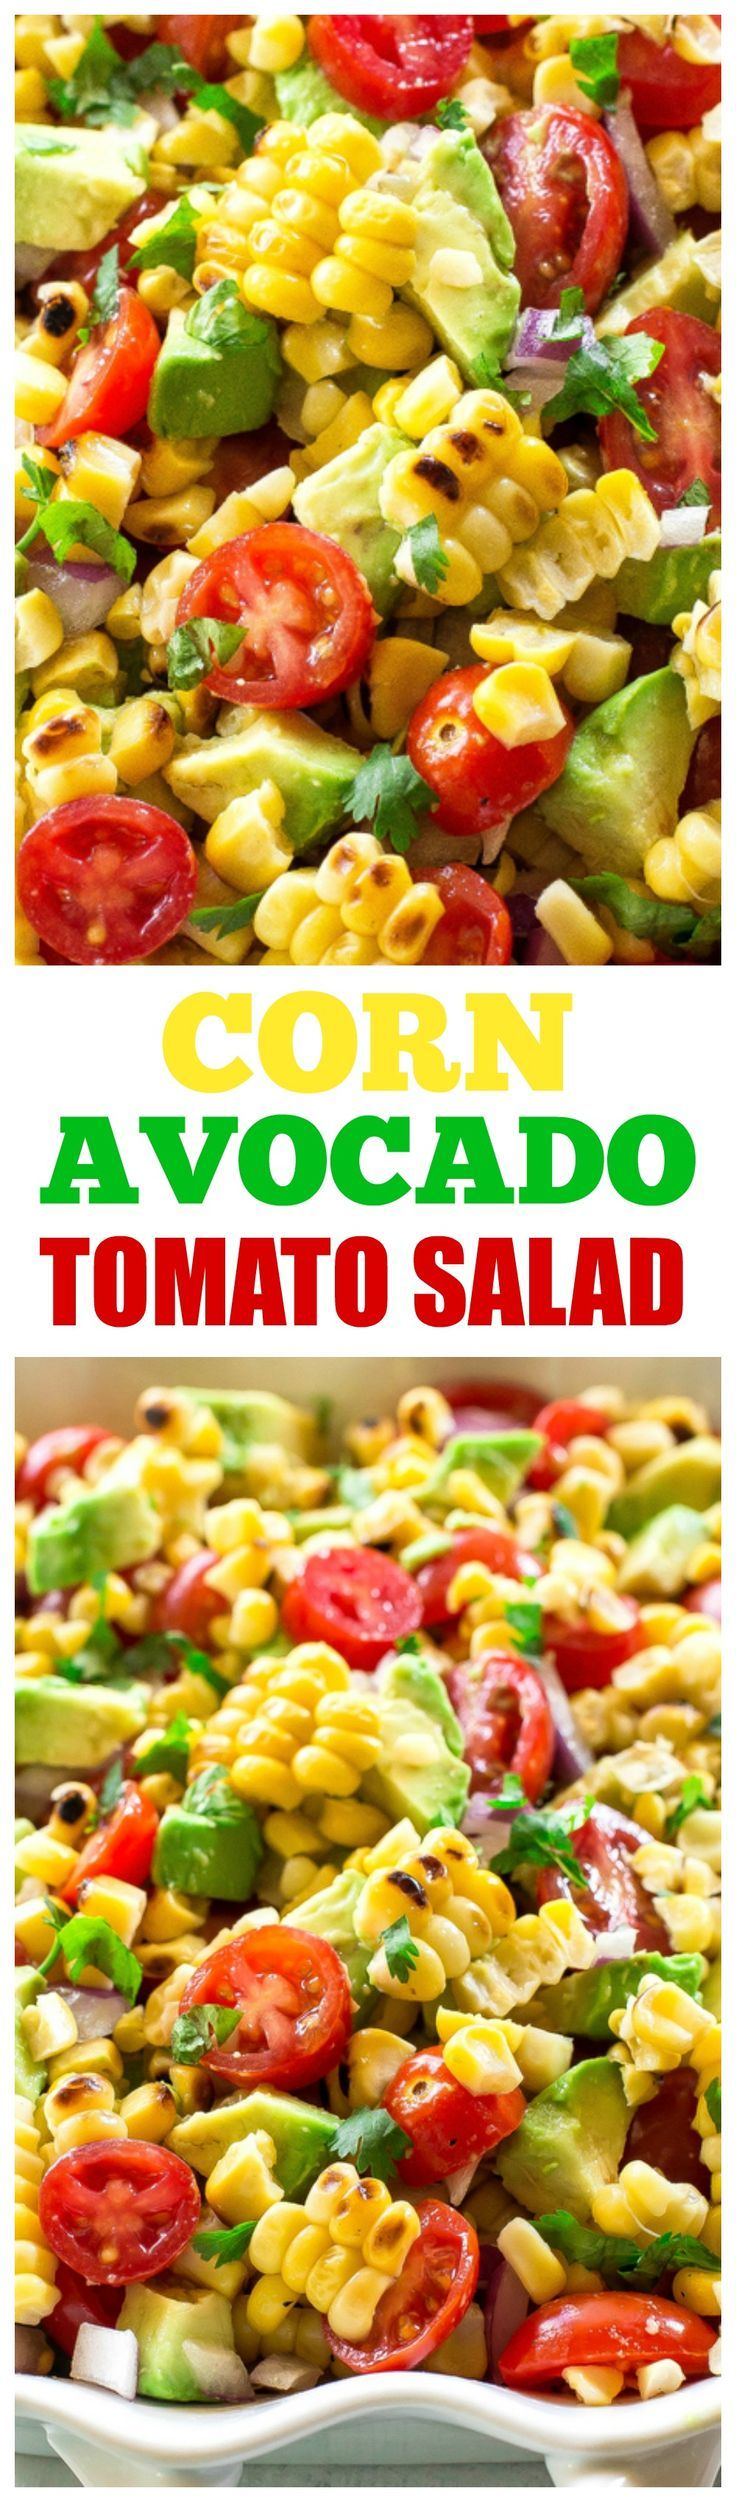 Corn, Avocado, and Tomato Salad - a healthy and light salad perfect for BBQs and get togethers. the-girl-who-ate-everything.com: